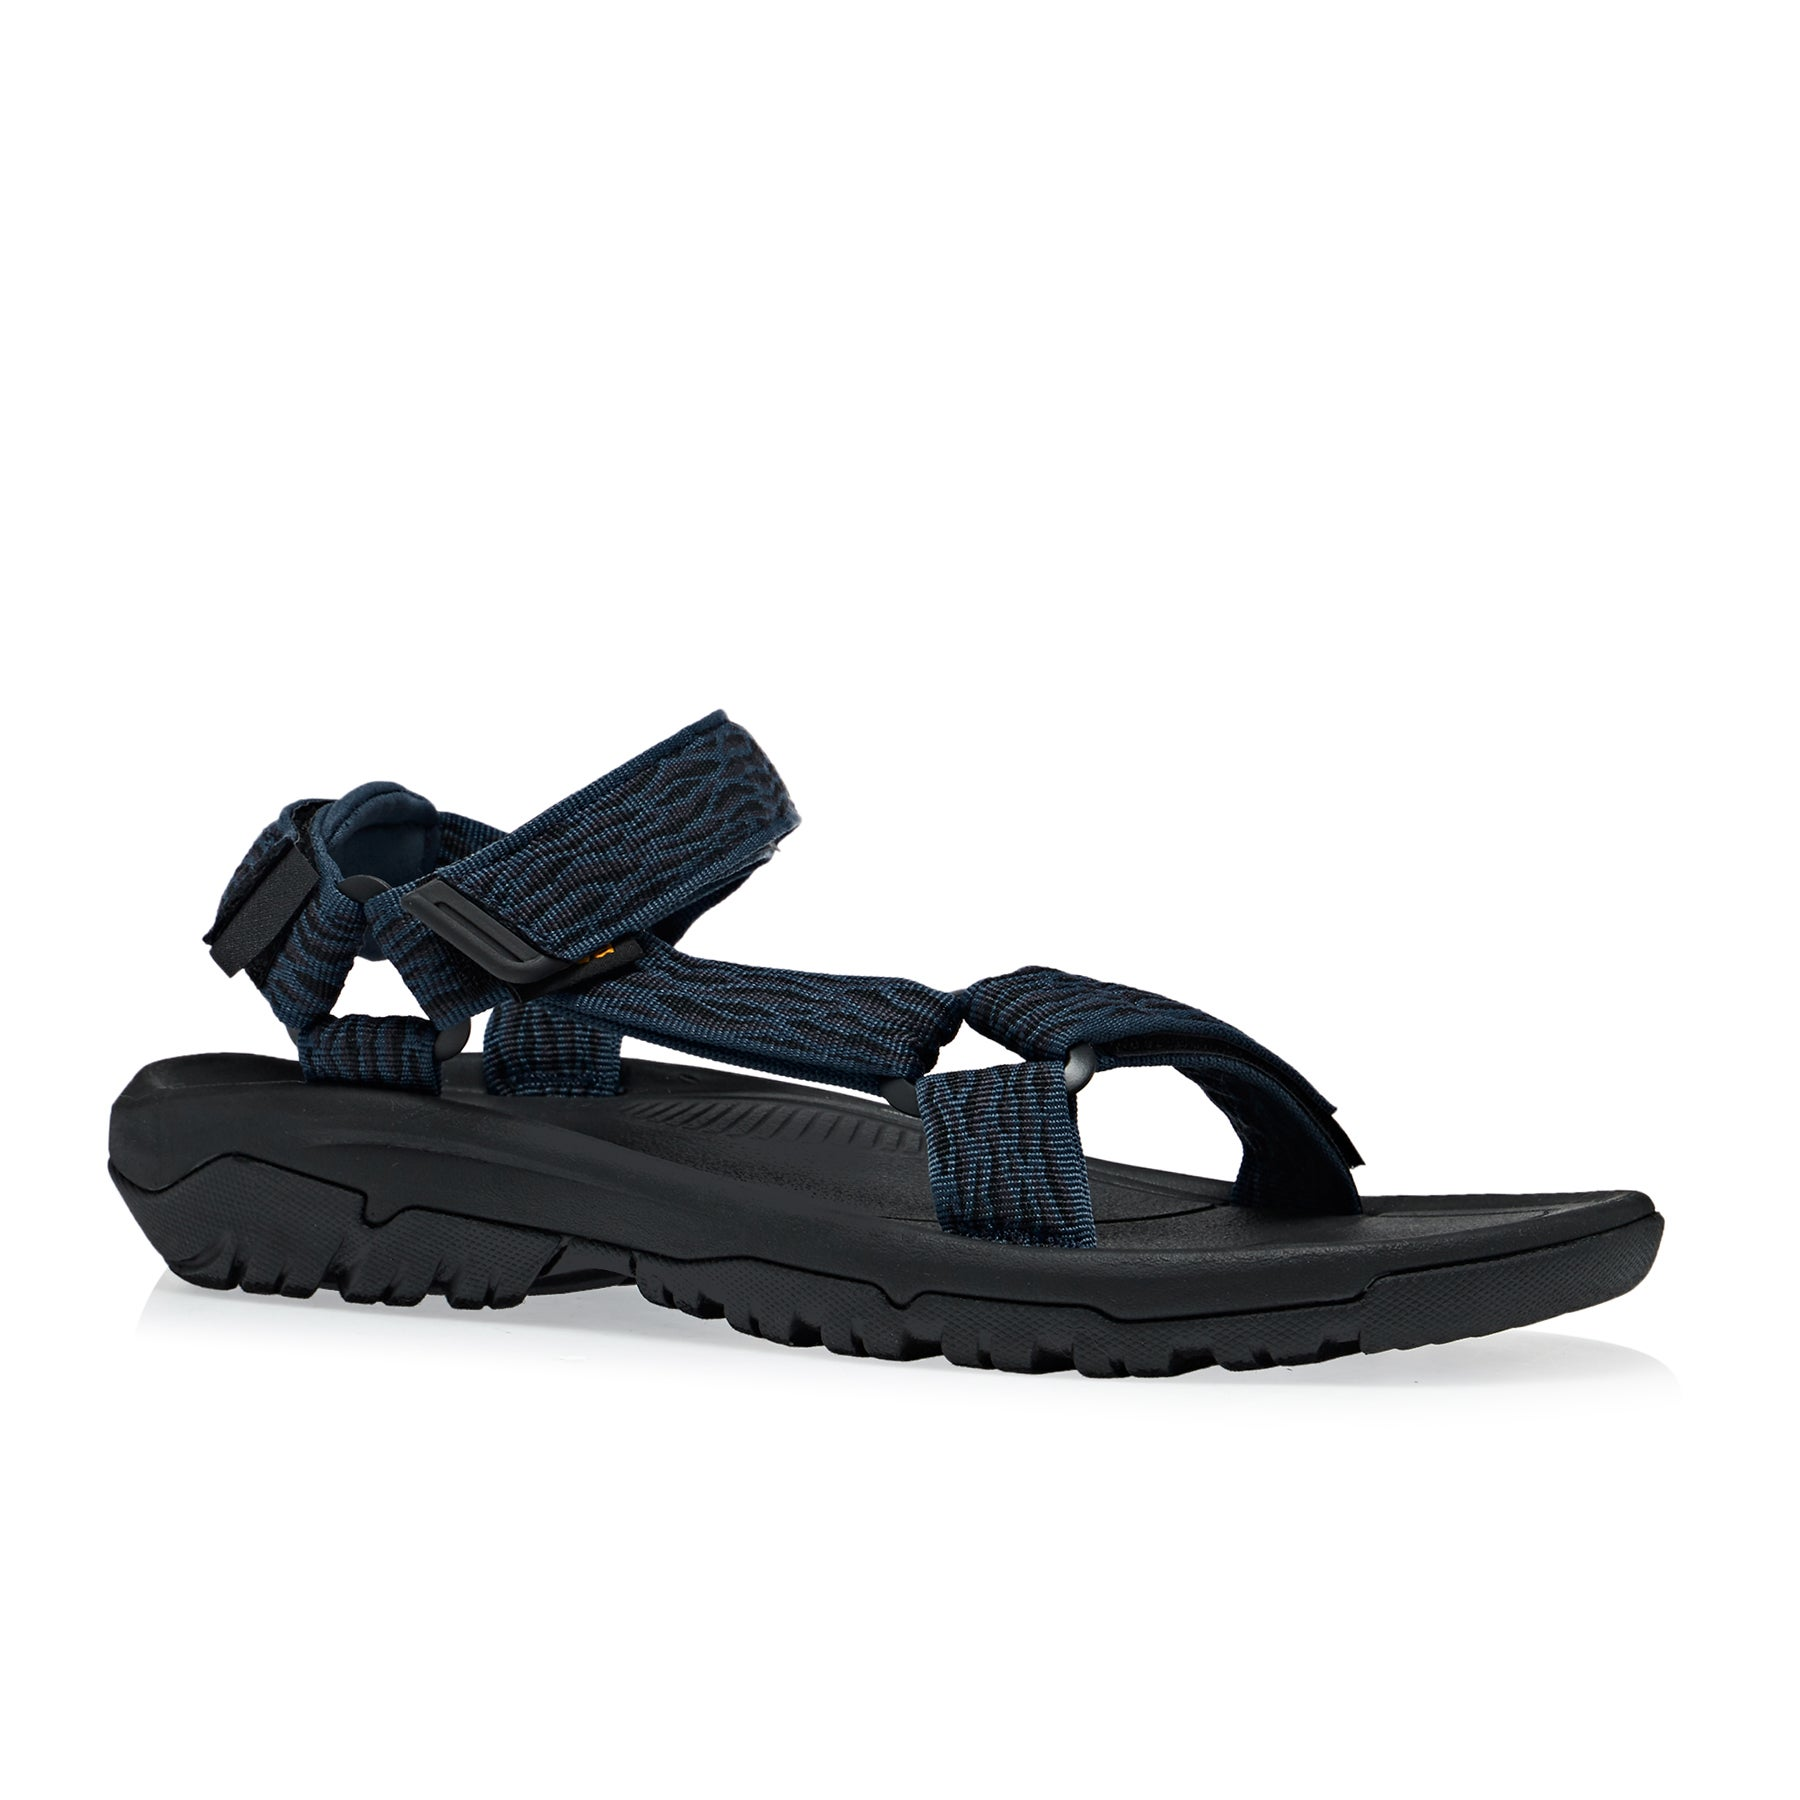 7fcaf1920 Teva Hurricane XLT2 Sandals available from Surfdome